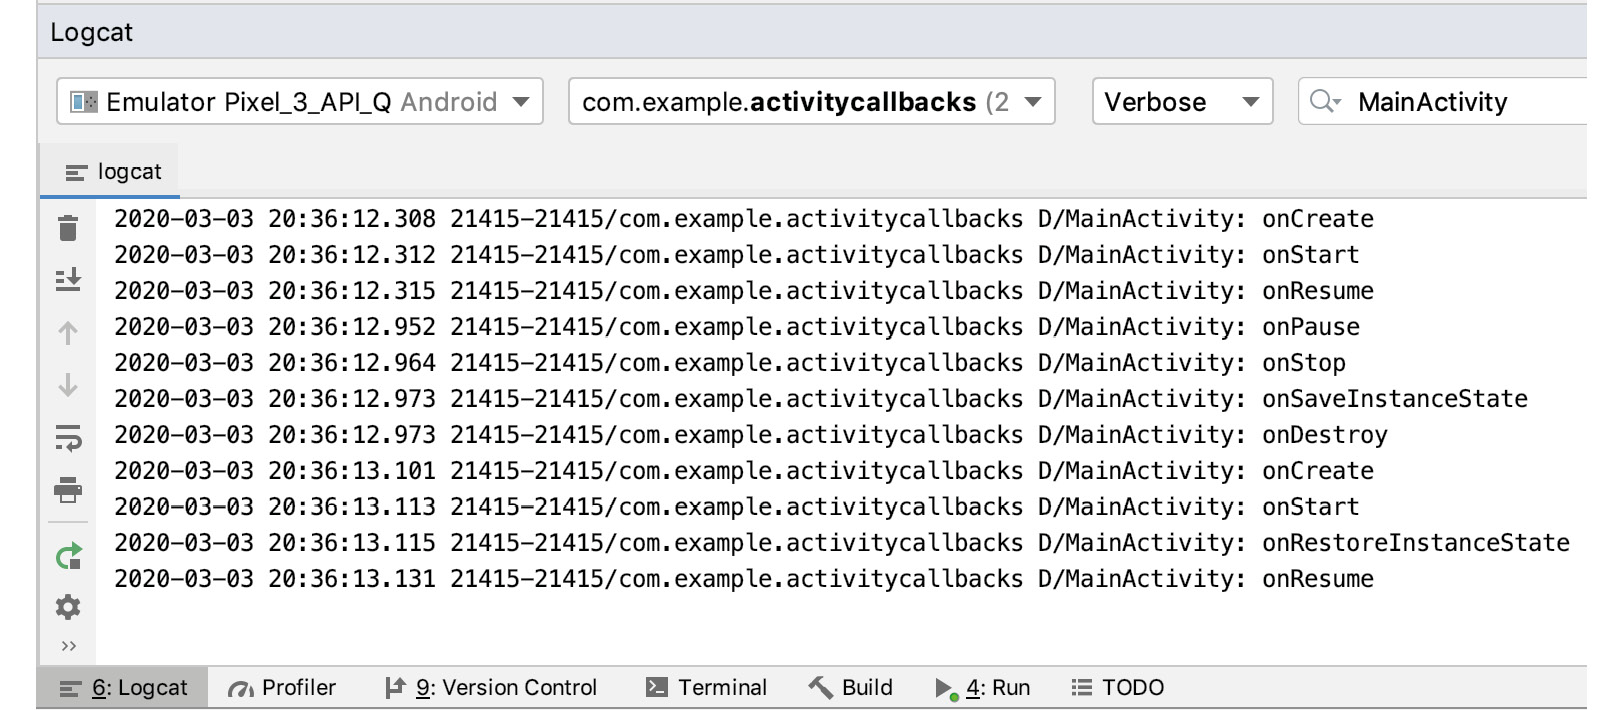 Figure 2.3: Filtering log statements by the TAG name